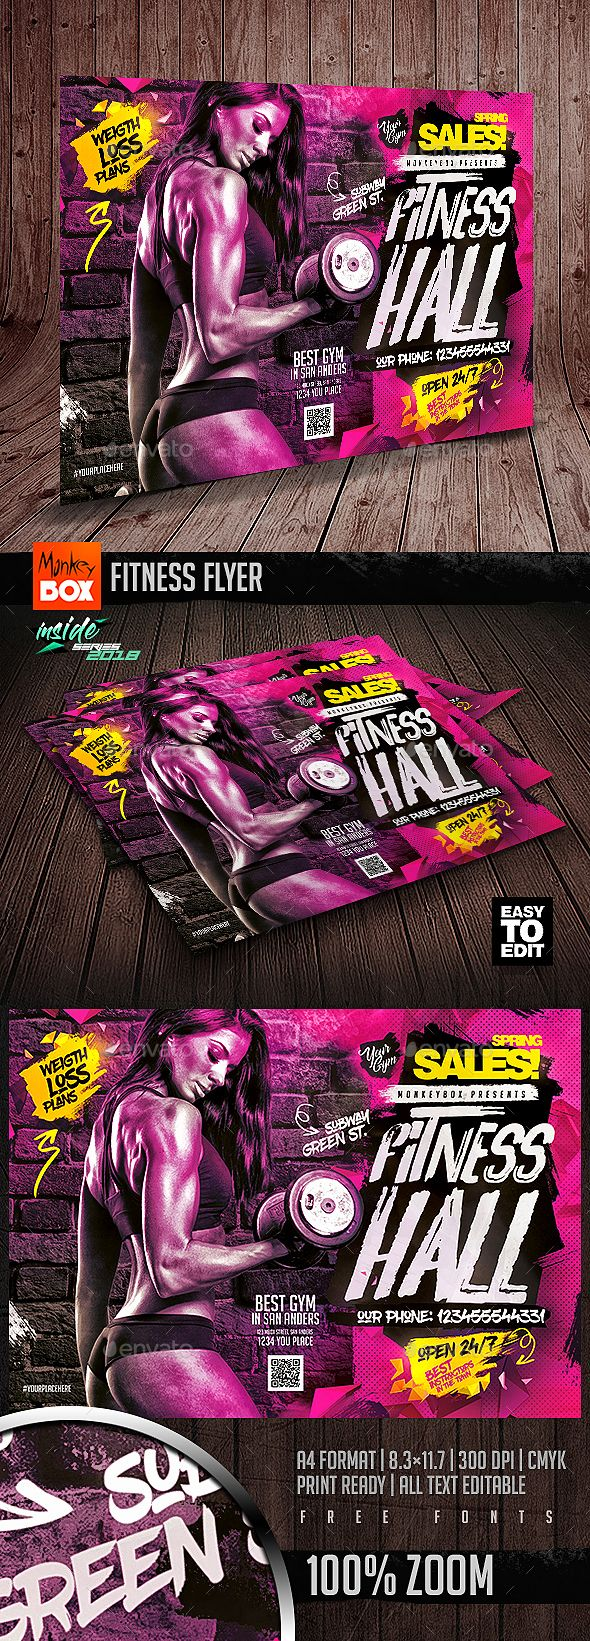 Pin by best Graphic Design on Flyer Templates   Fitness